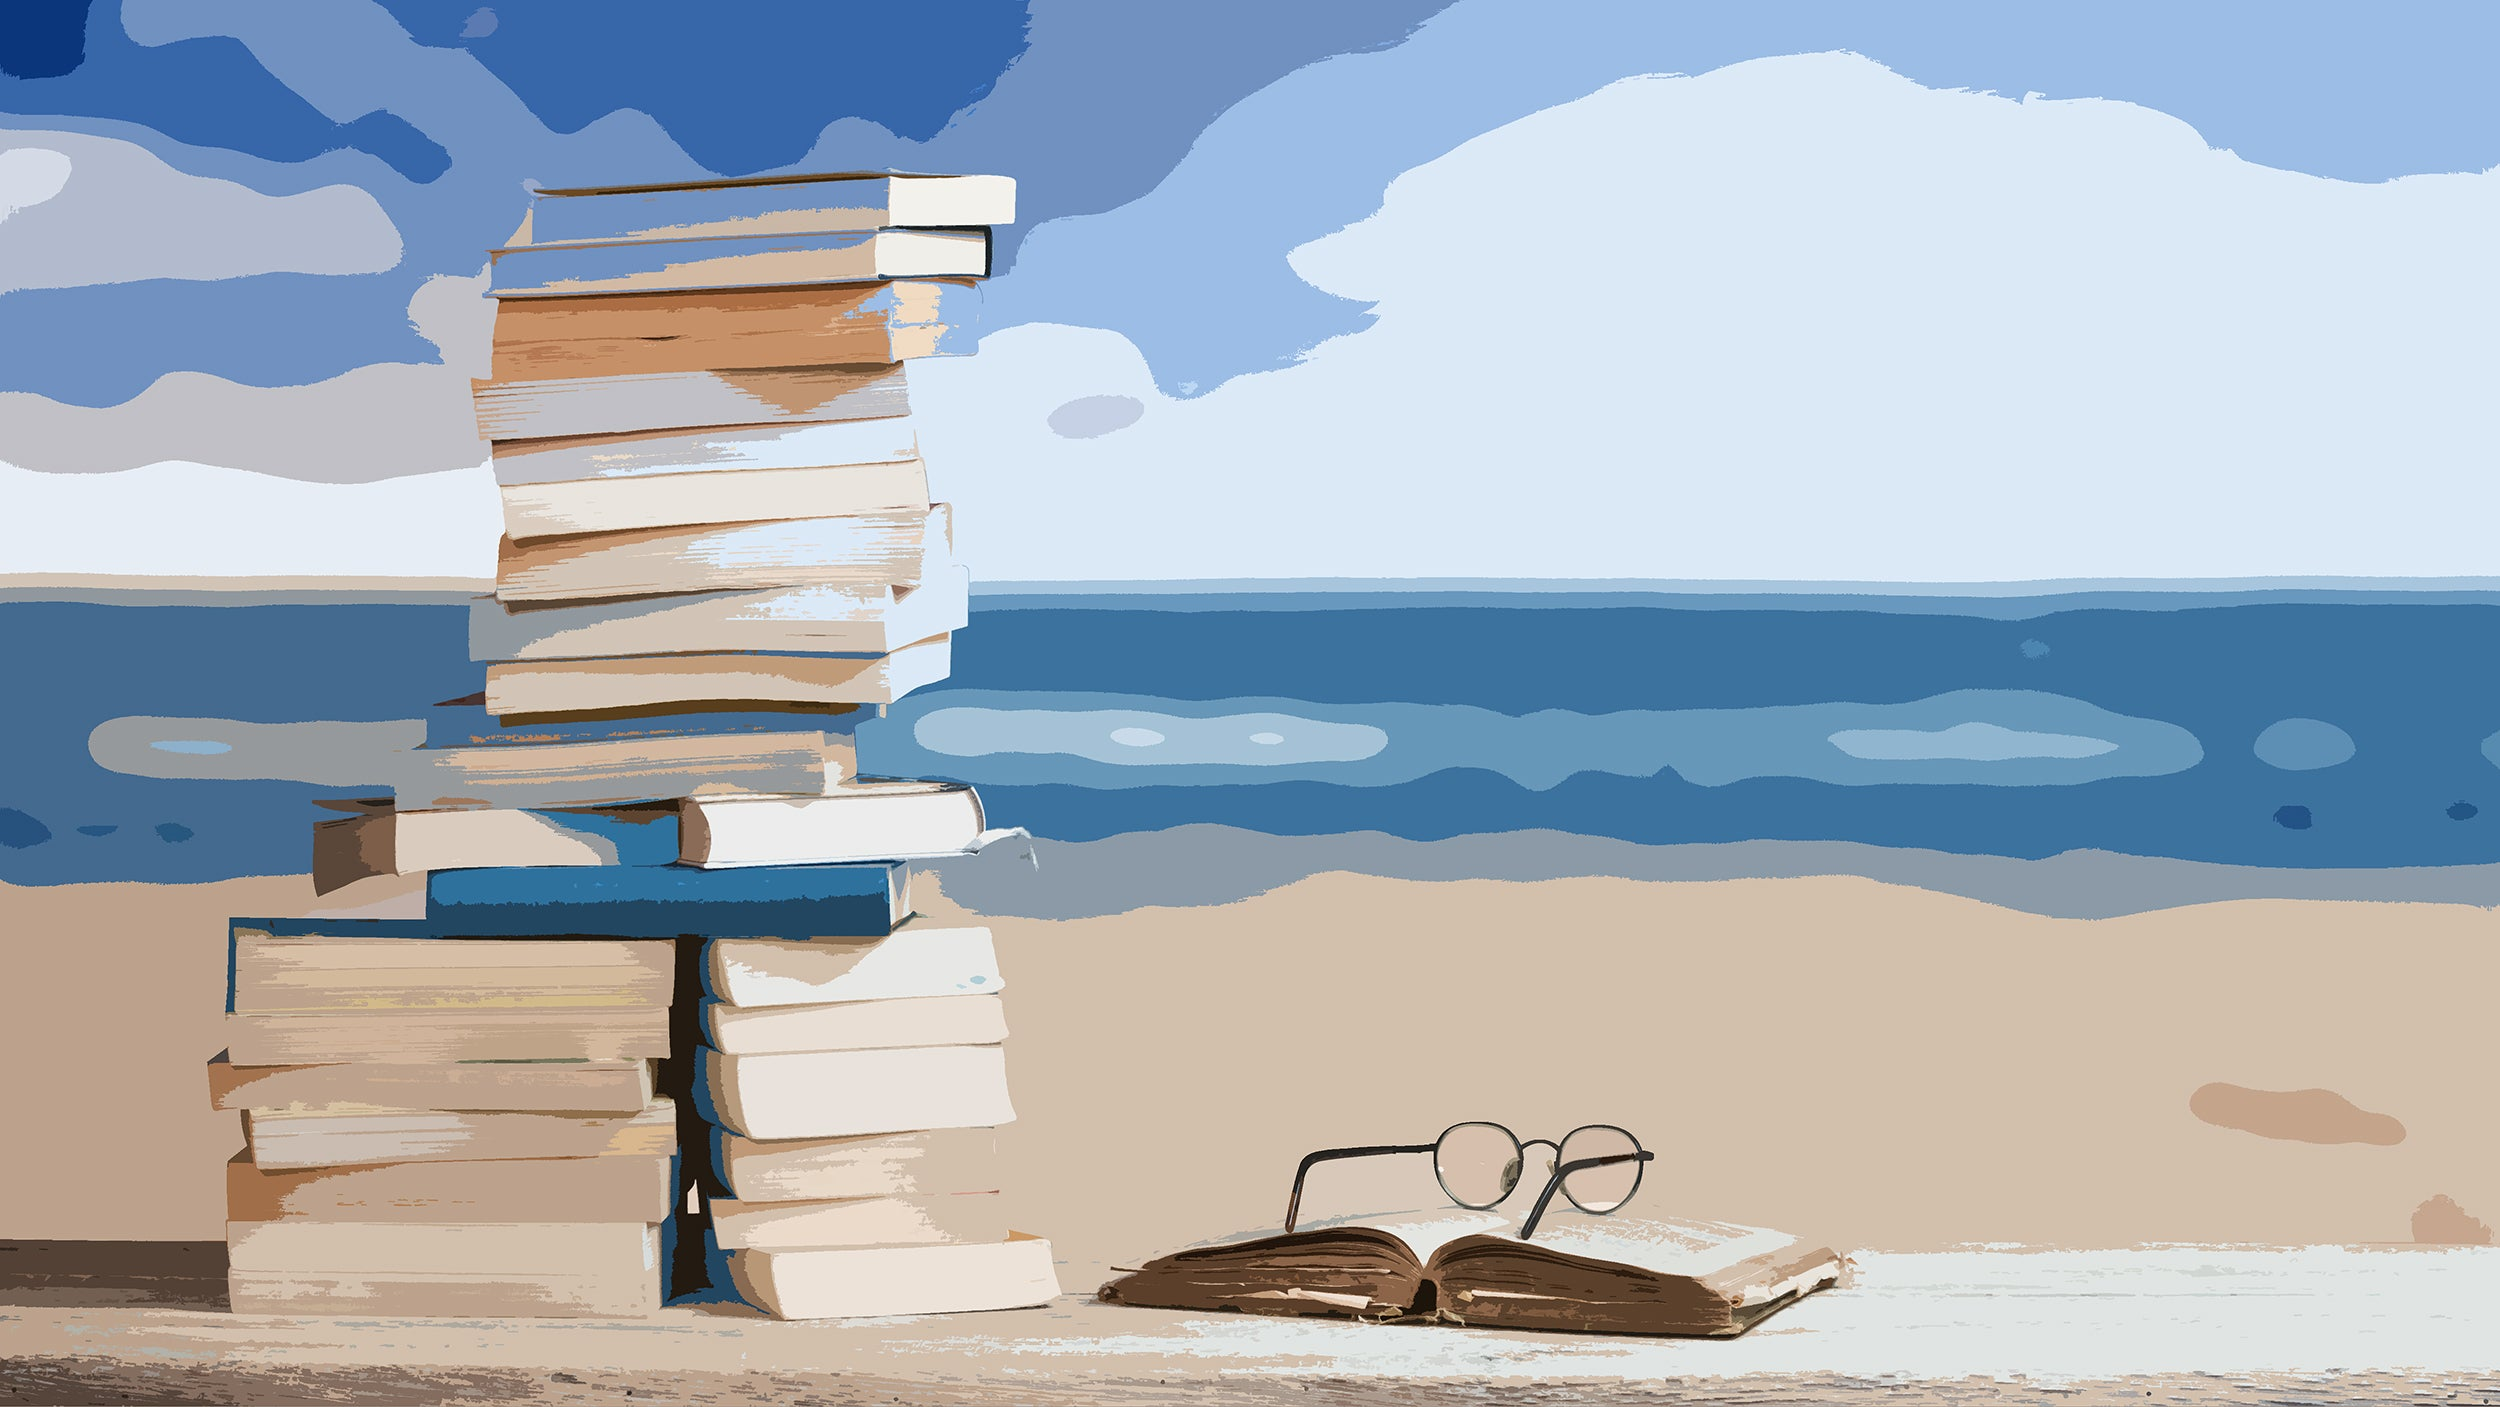 Illustration of books on a beach